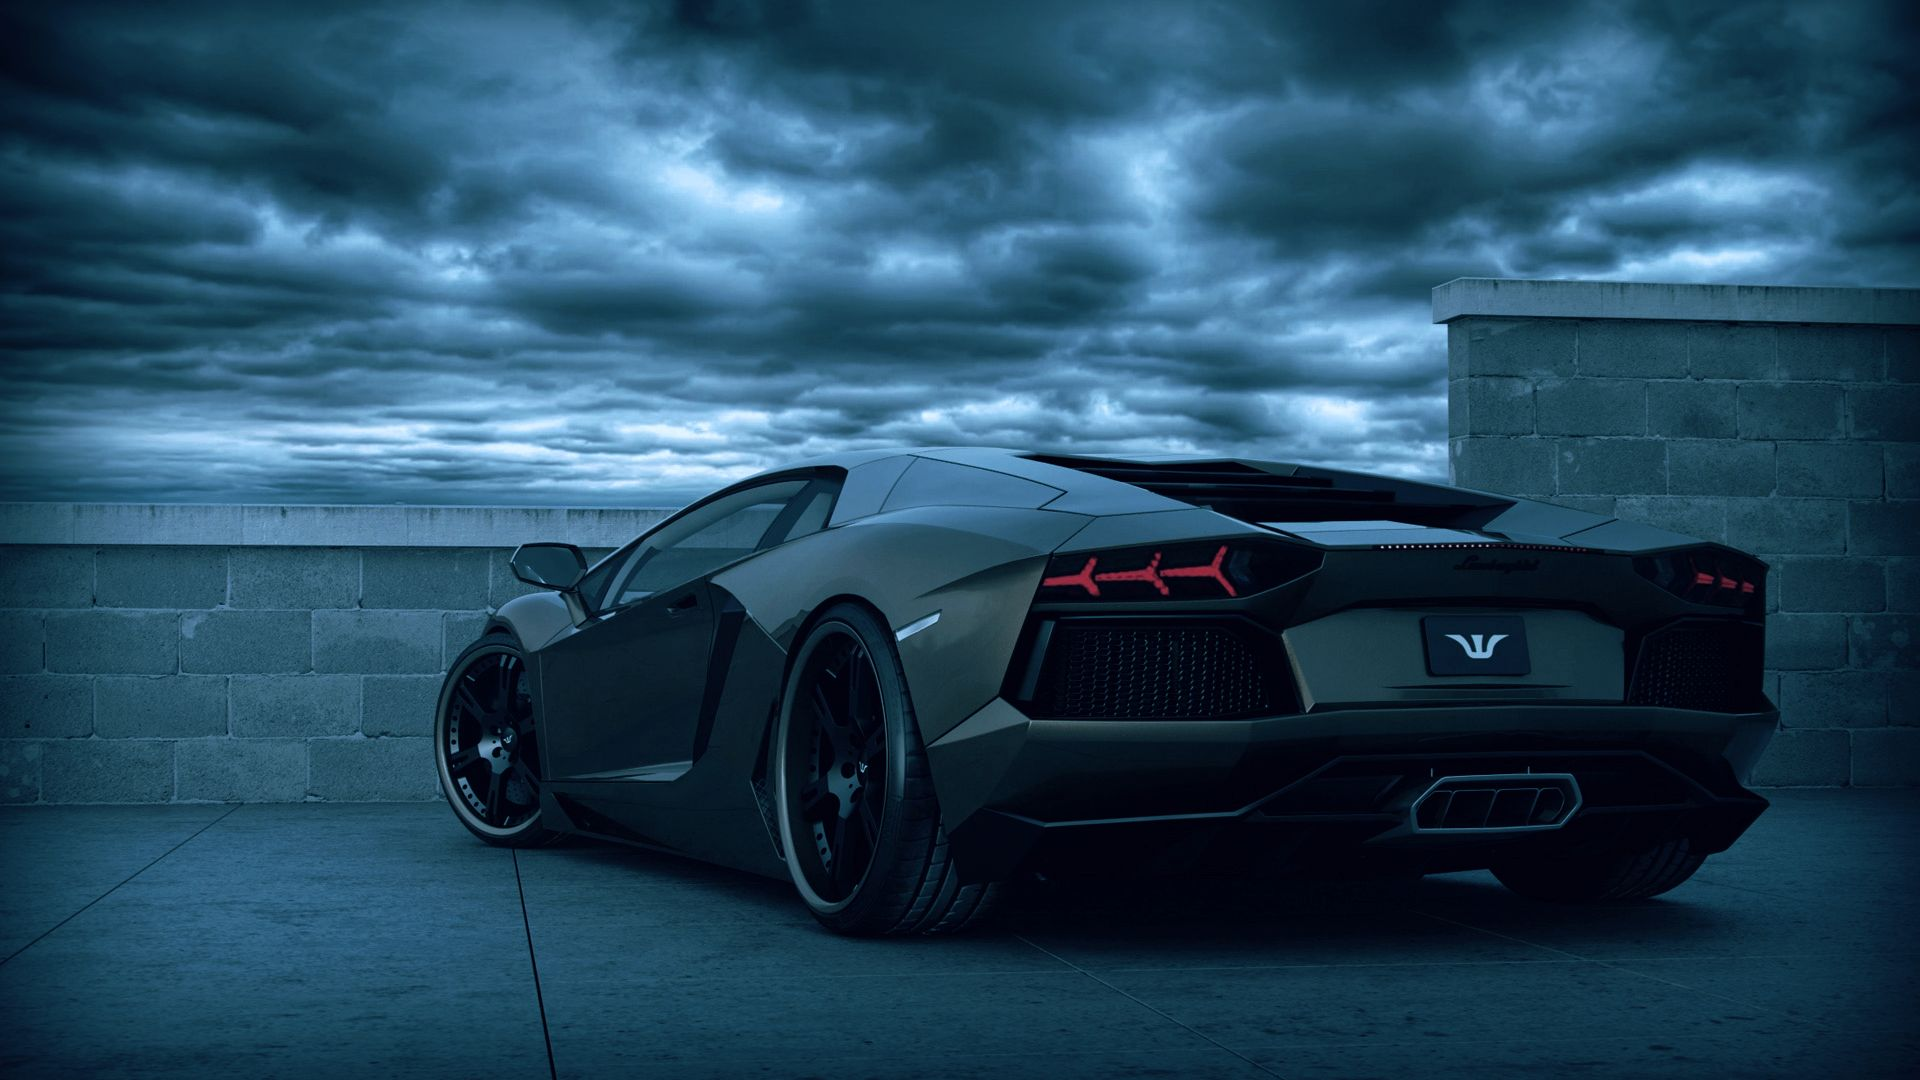 lamborghini dark wallpapers hd | pixelstalk